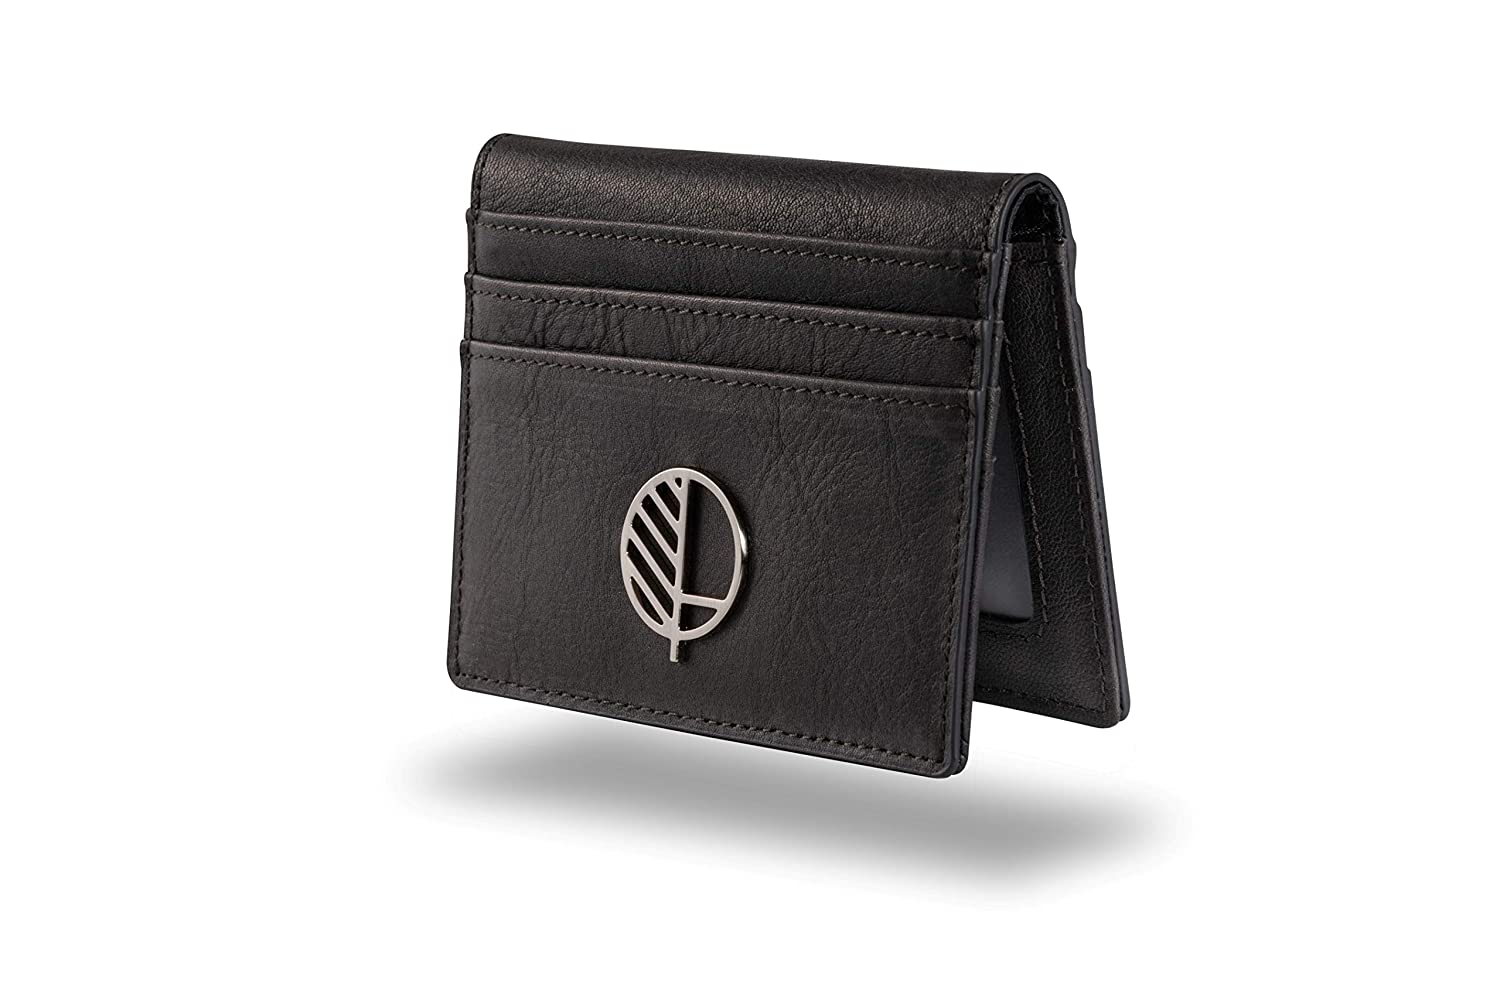 Mens Premium Real Leather Compact Wallet and Large Credit Card Holder with ID Window in Stunning, Sensuous, Genuine British Leather. The'Active' from Drew Lennox in Embossed Rich Brown. DL-LRGCH-BN